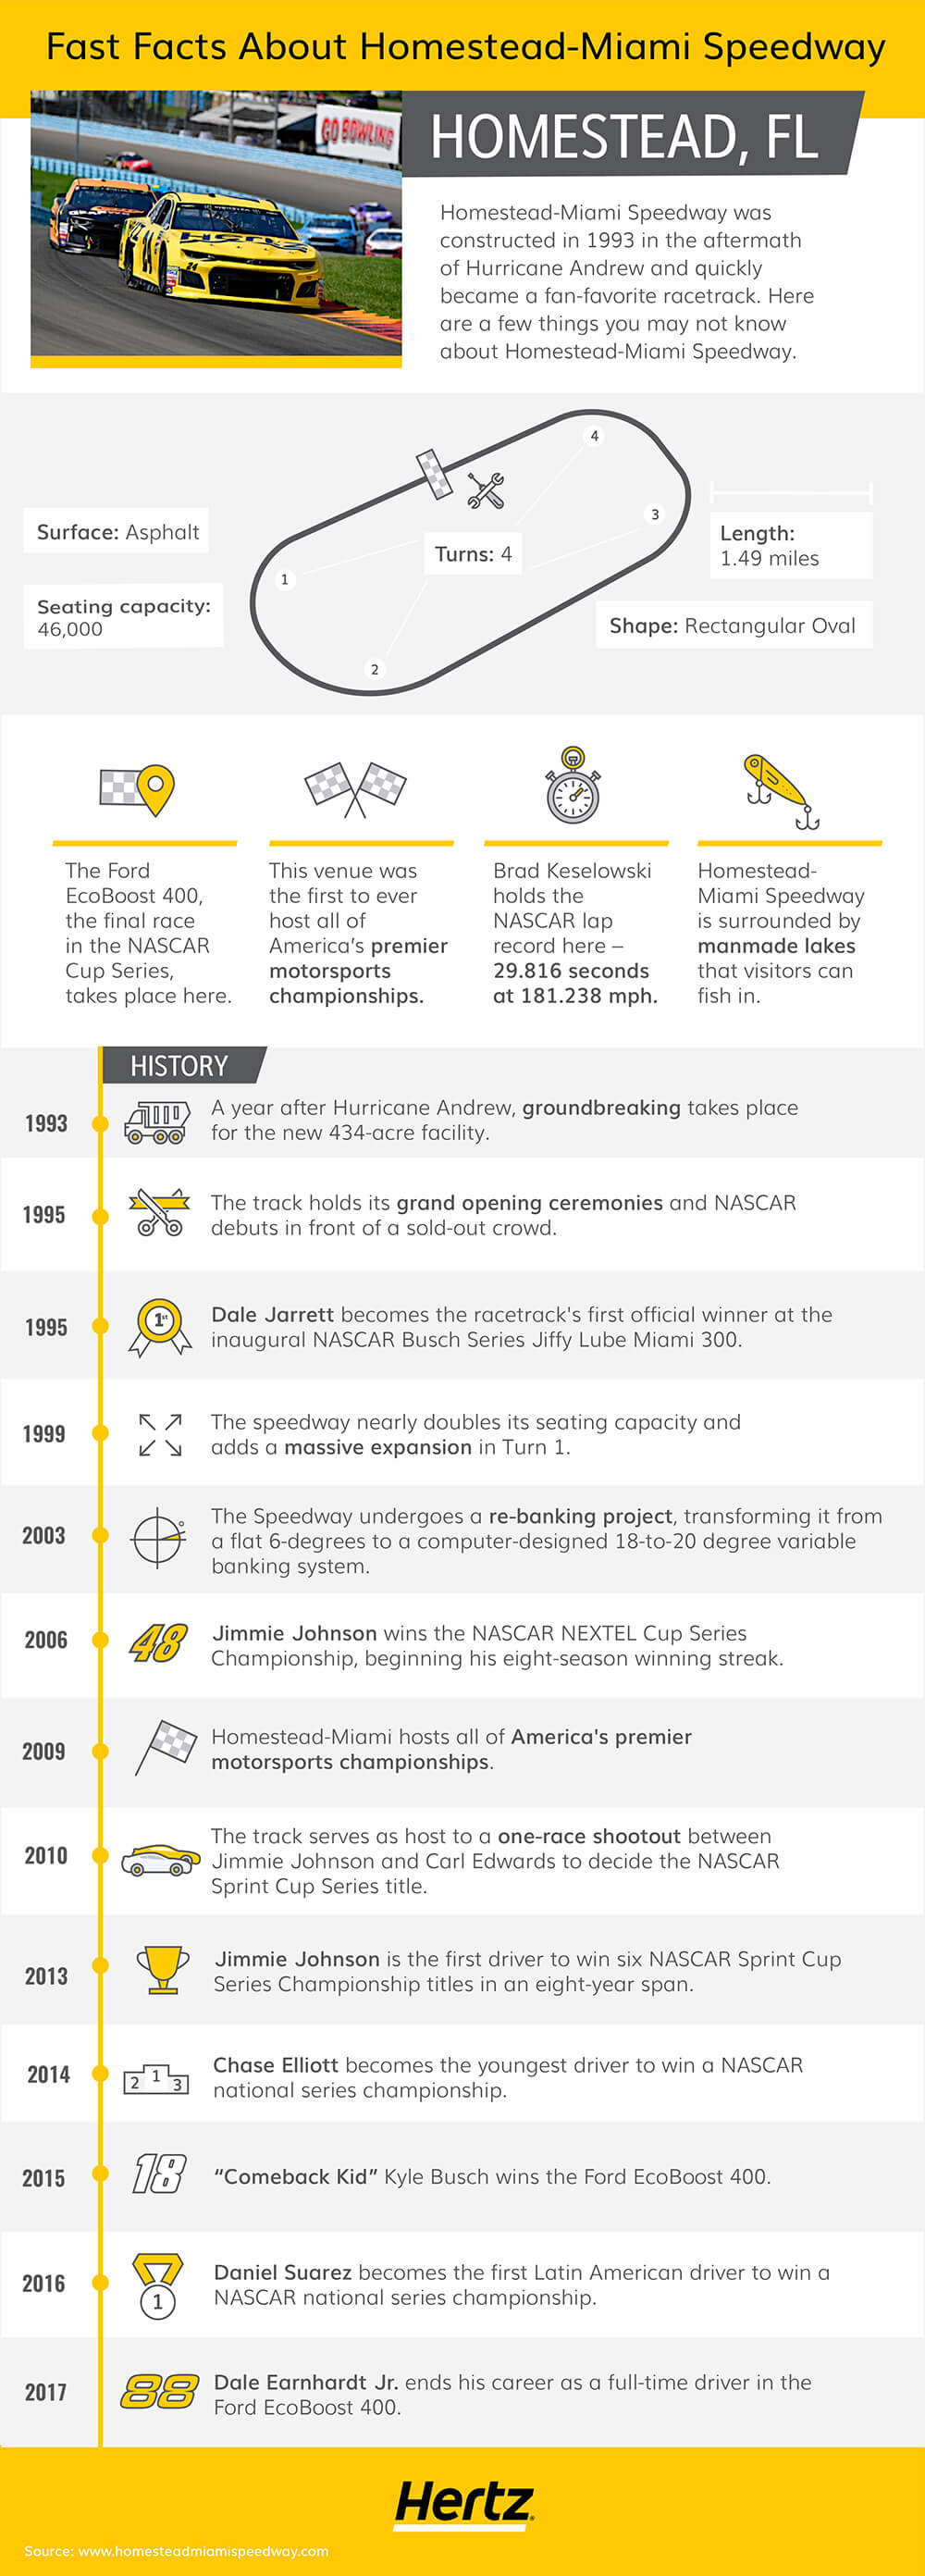 Homestead-Miami Speedway infographic featuring various statistics about the history and logistics of this racetrack.